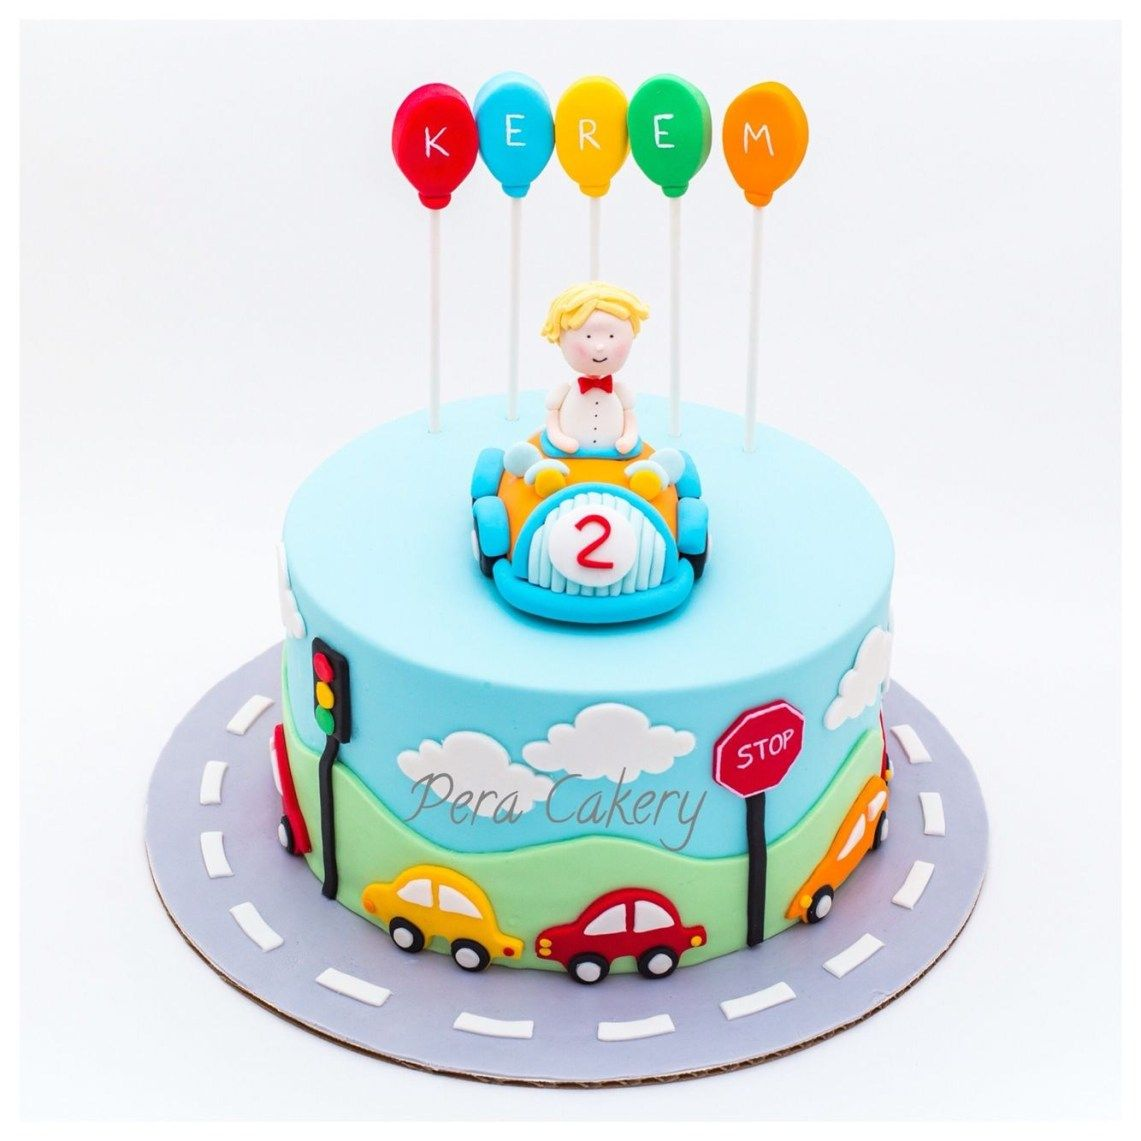 25+ Elegant Picture of 2 Year Old Birthday Cake (With